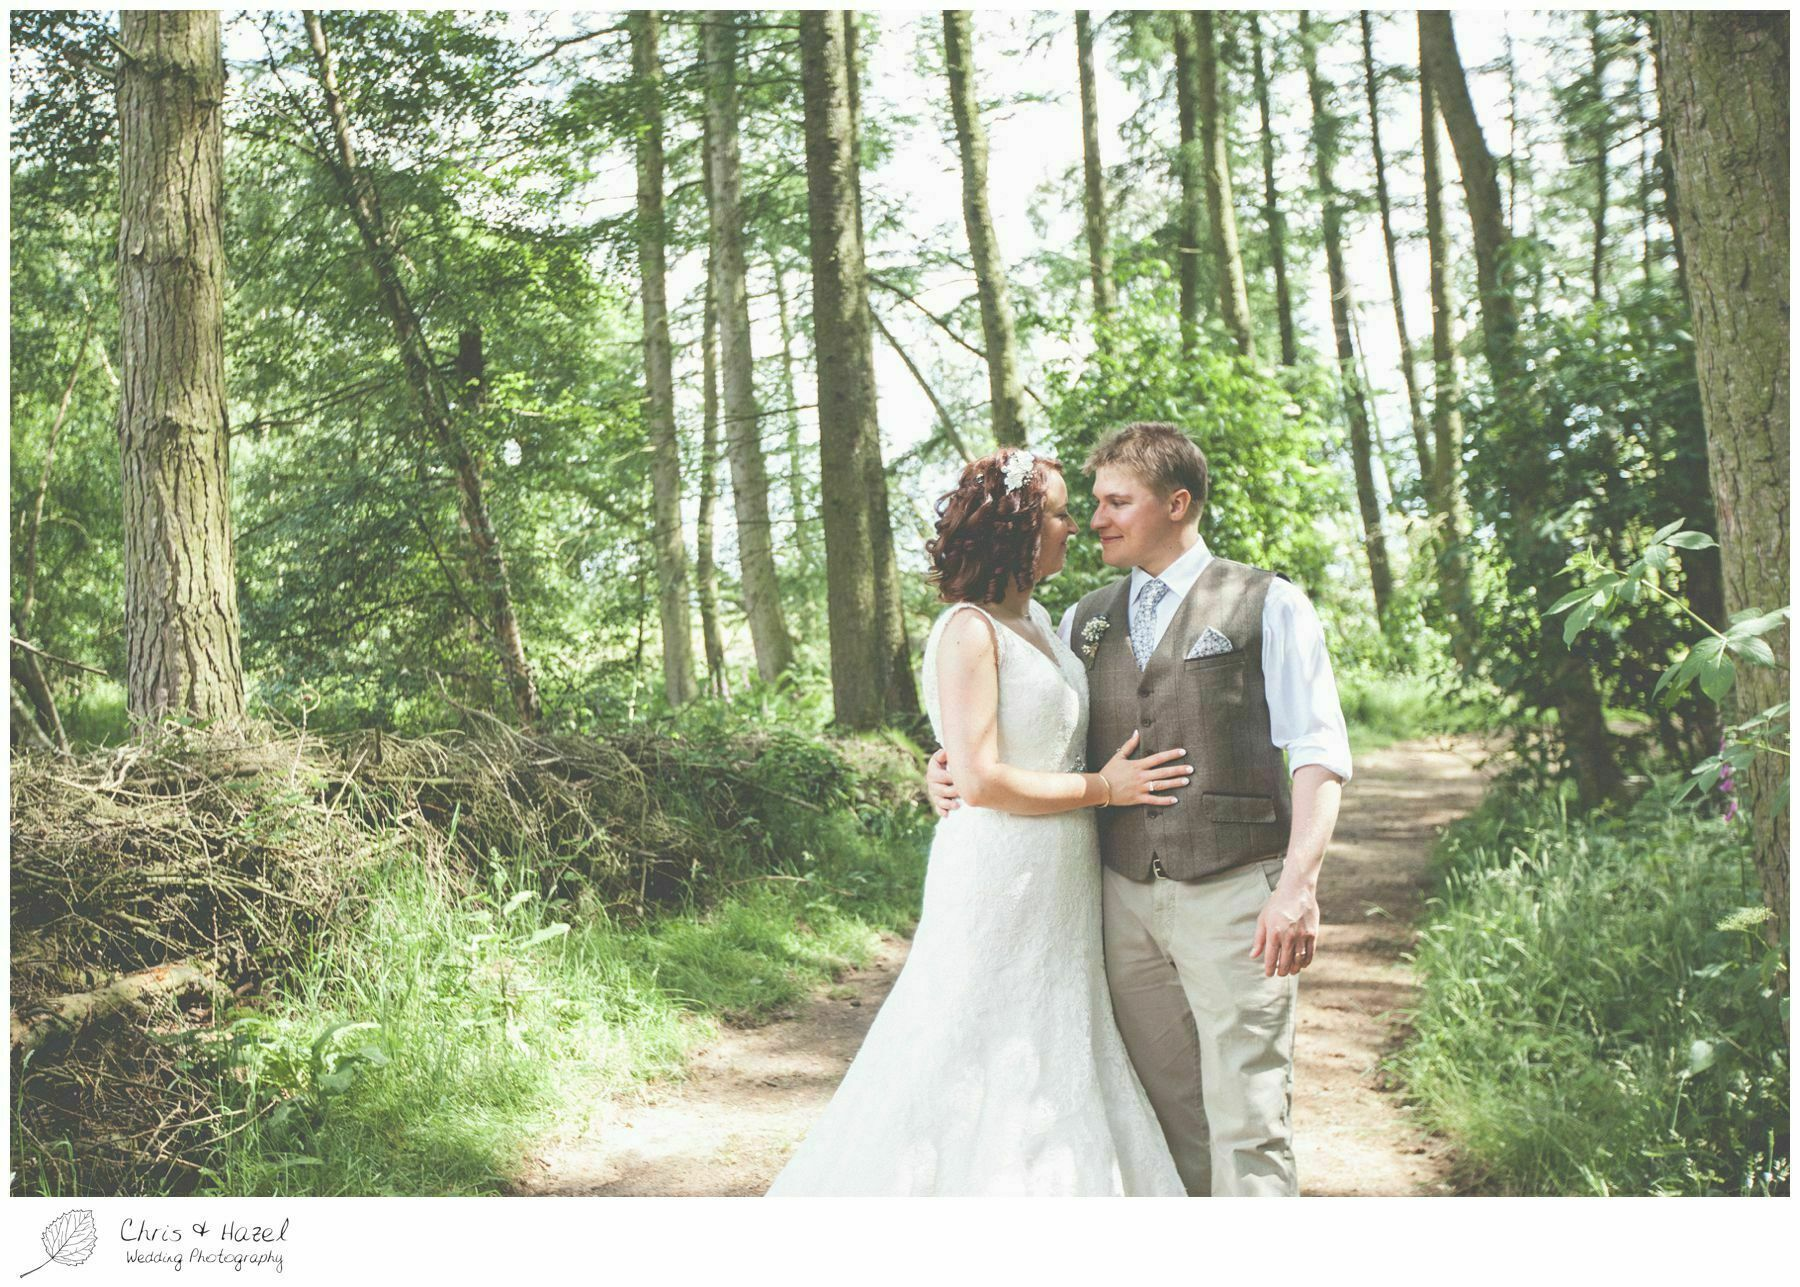 wedding bride and groom photographs portraits woodland, eco wedding, wedding, Eccup Wedding Photographer, Lineham Farm, Wedding Photography Leeds, Chris and Hazel Wedding Photography, Richard Wyatt, Laura Kelly